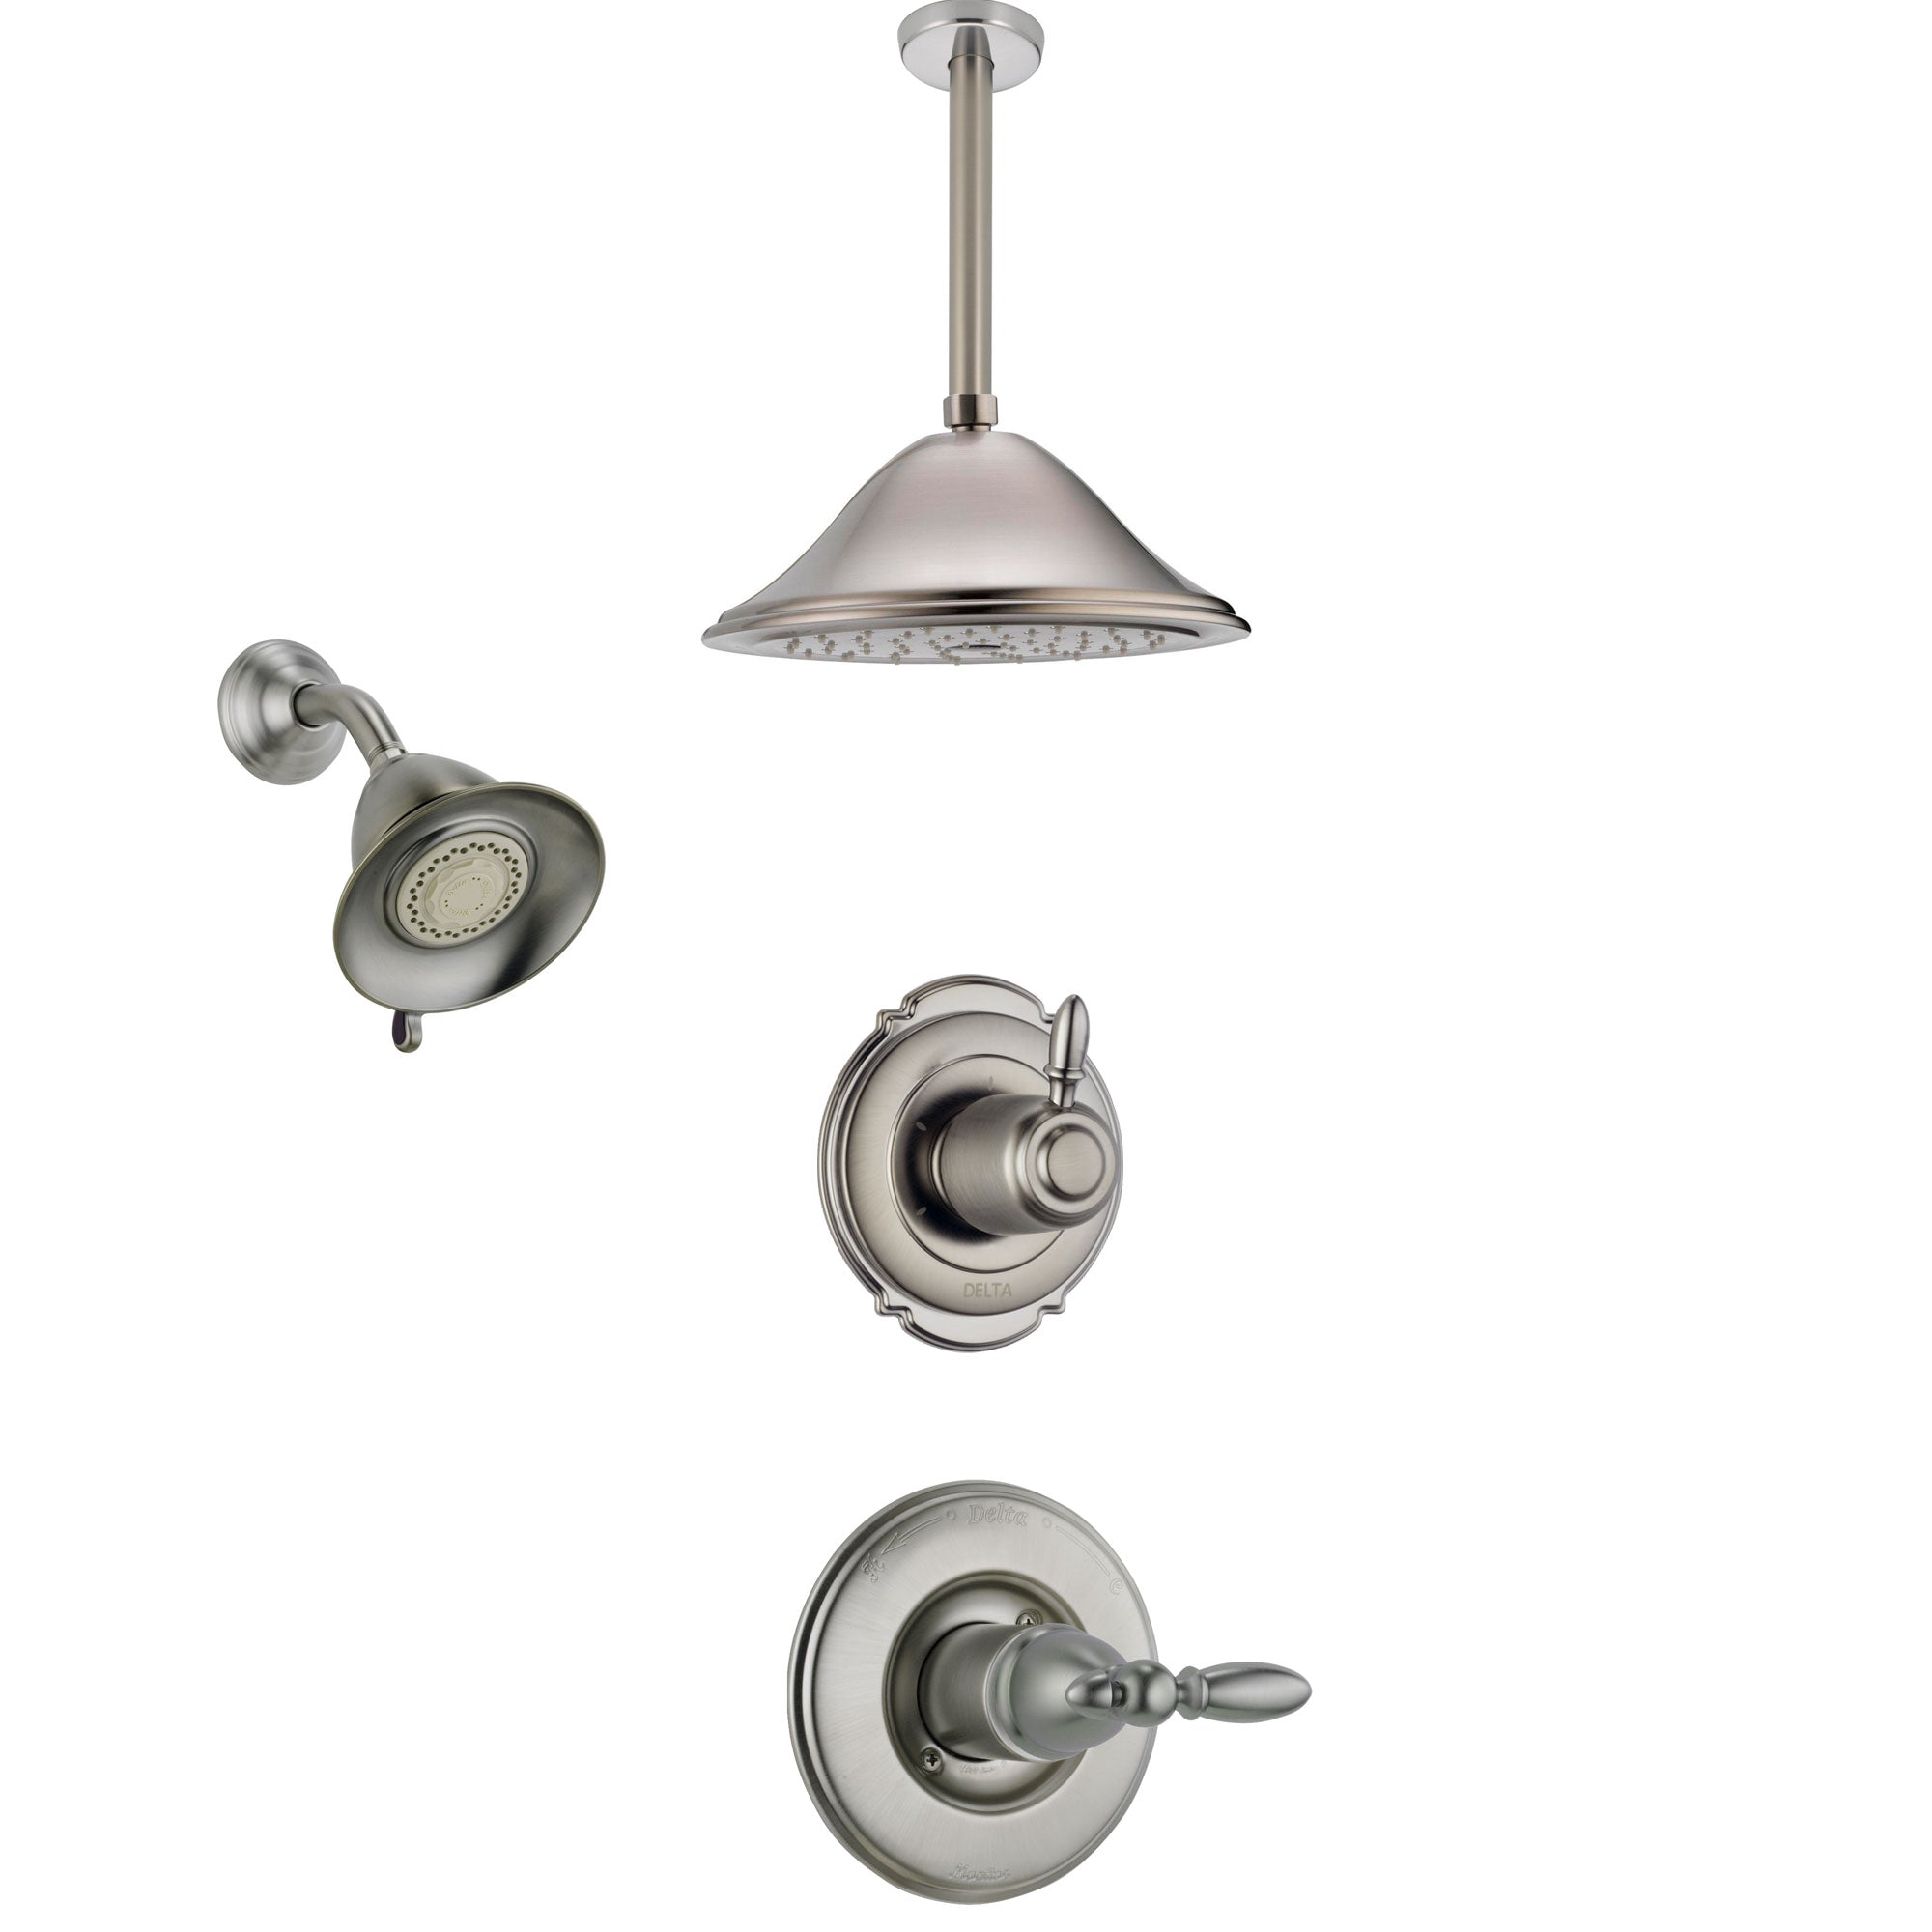 Delta Victorian Stainless Steel Finish Shower System with Control Handle, 3-Setting Diverter, Showerhead, and Ceiling Mount Showerhead SS14255SS5